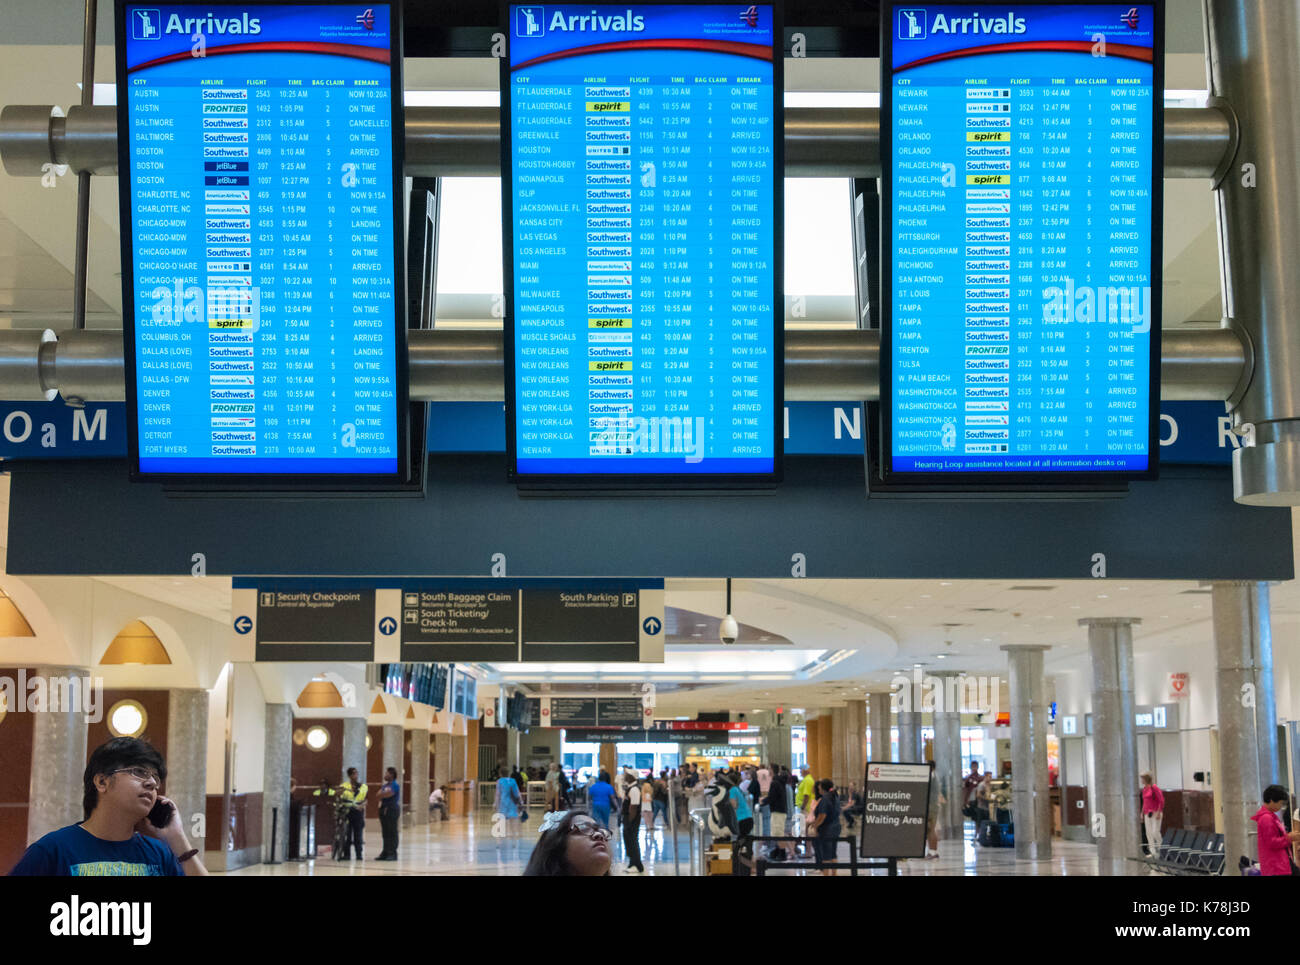 People checking flight arrival display boards at Hartsfield-Jackson Atlanta International Airport in Atlanta, Georgia. (USA) - Stock Image